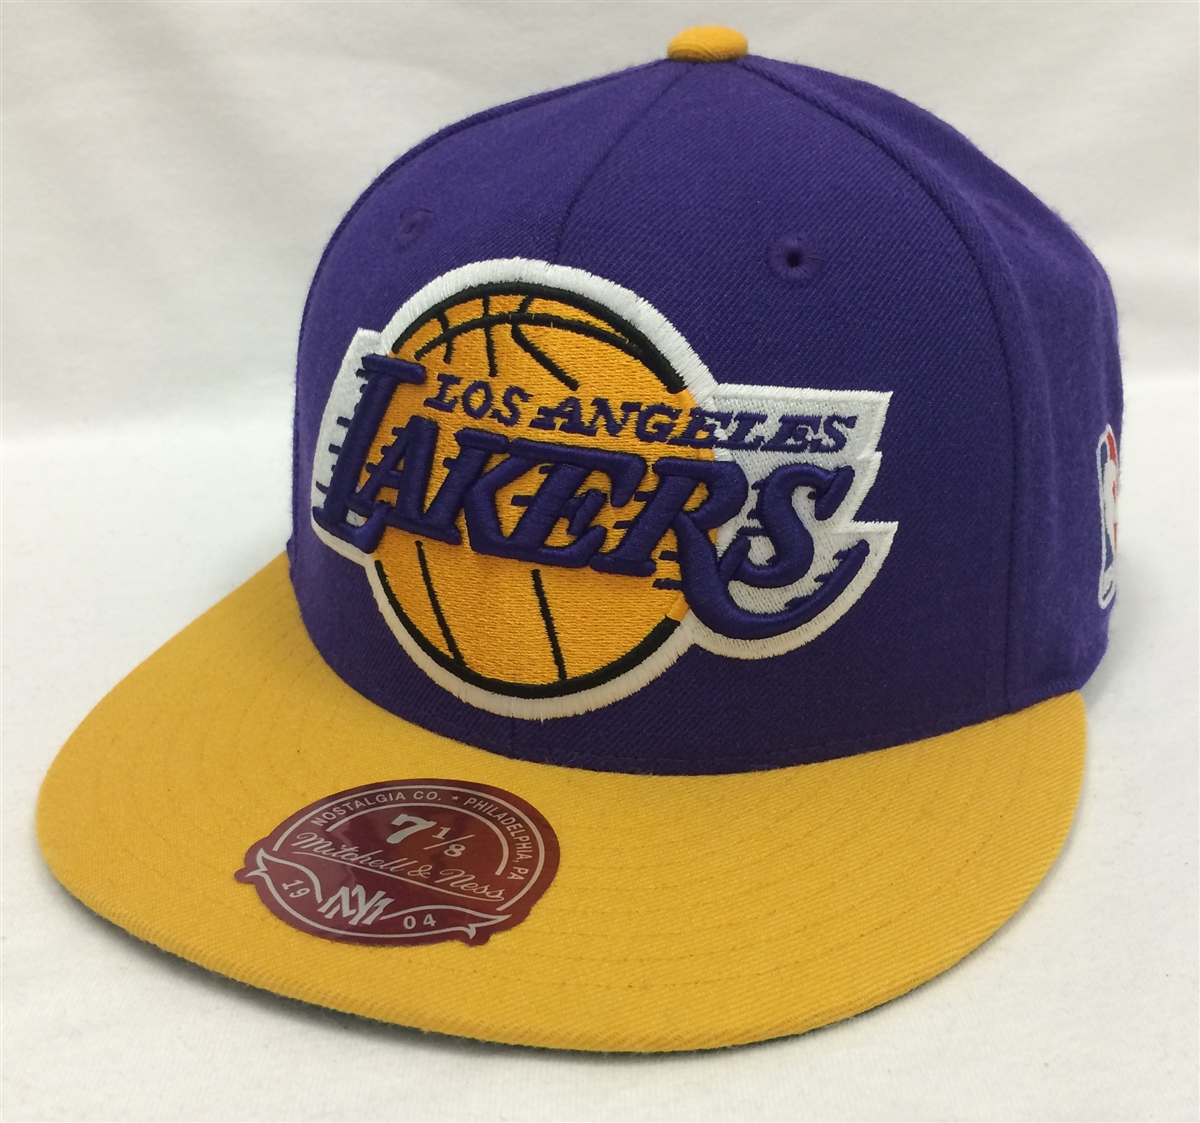 hat Vintage lakers